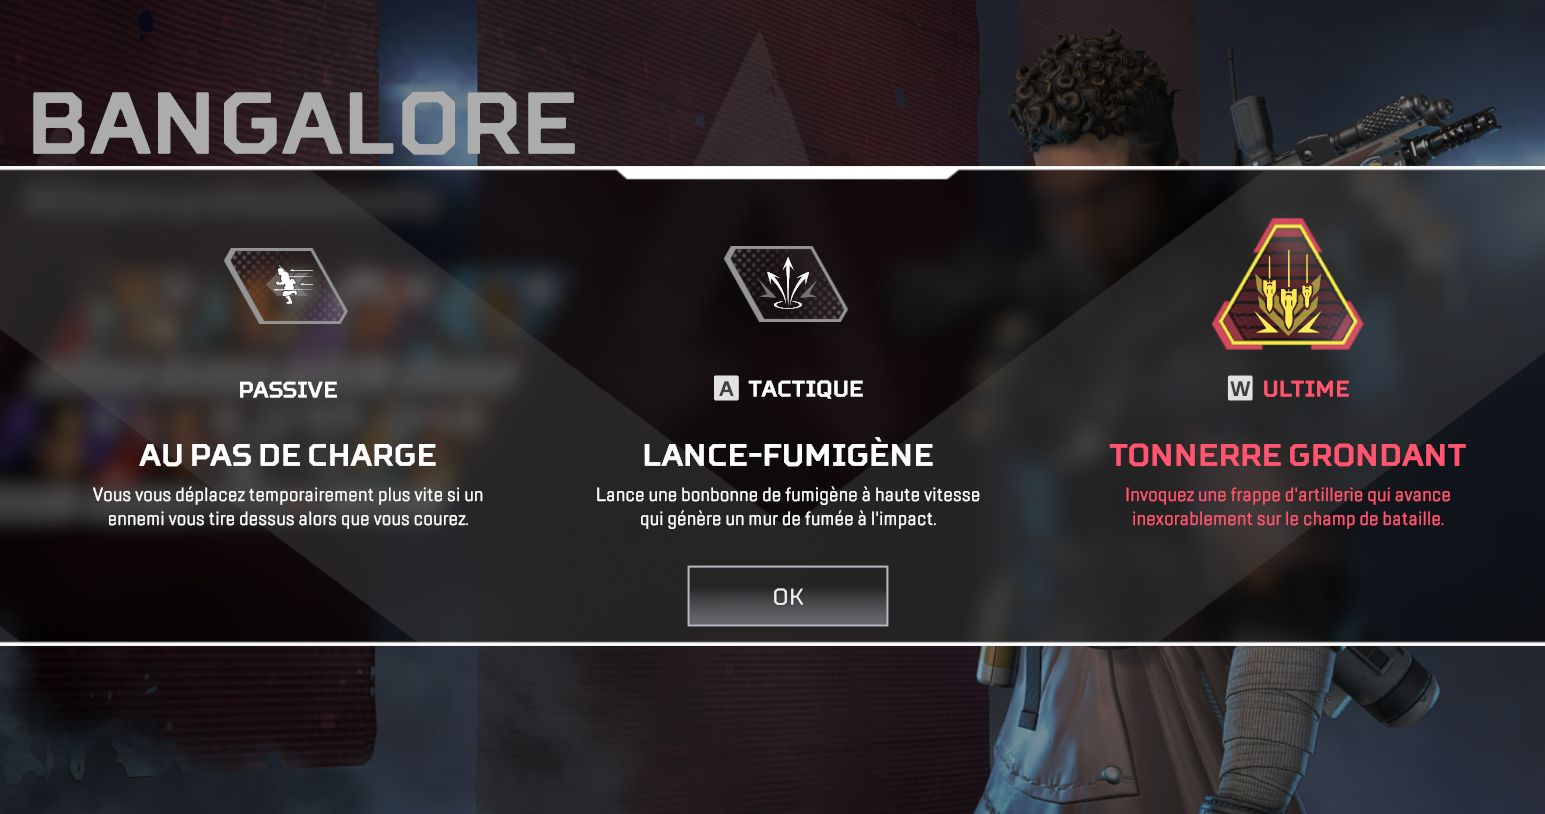 Competences Bangalore - tactique ultime passif - Apex Legends